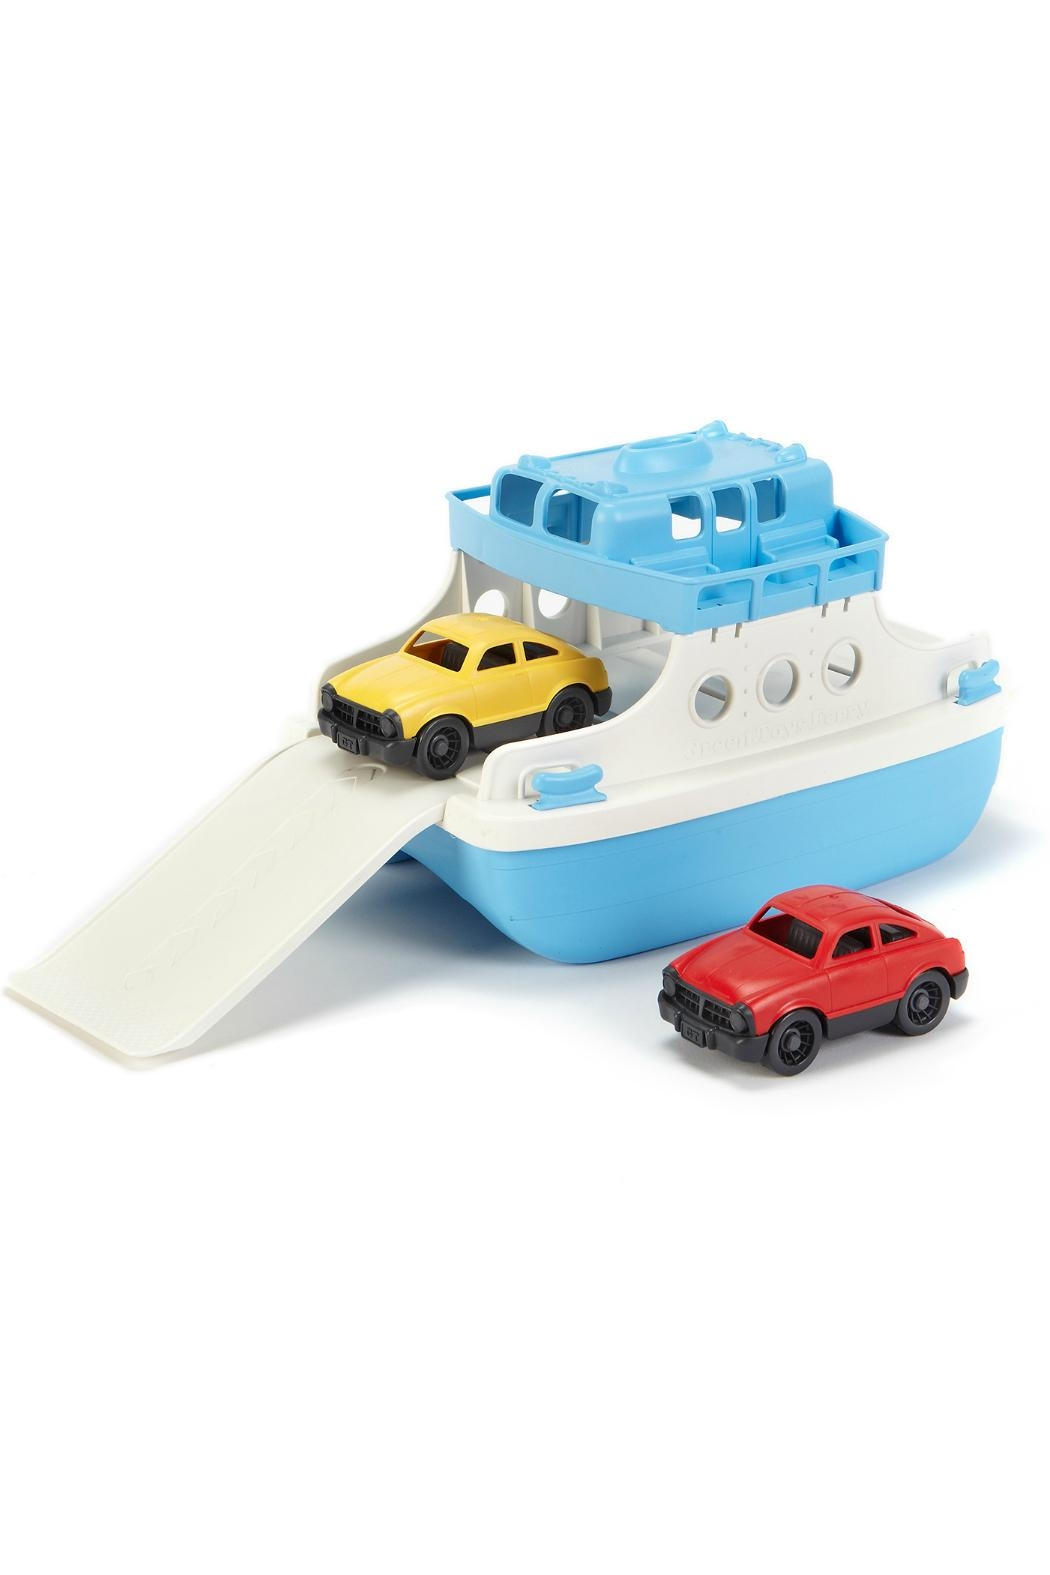 Green Toys Toy Ferry Boat - Main Image